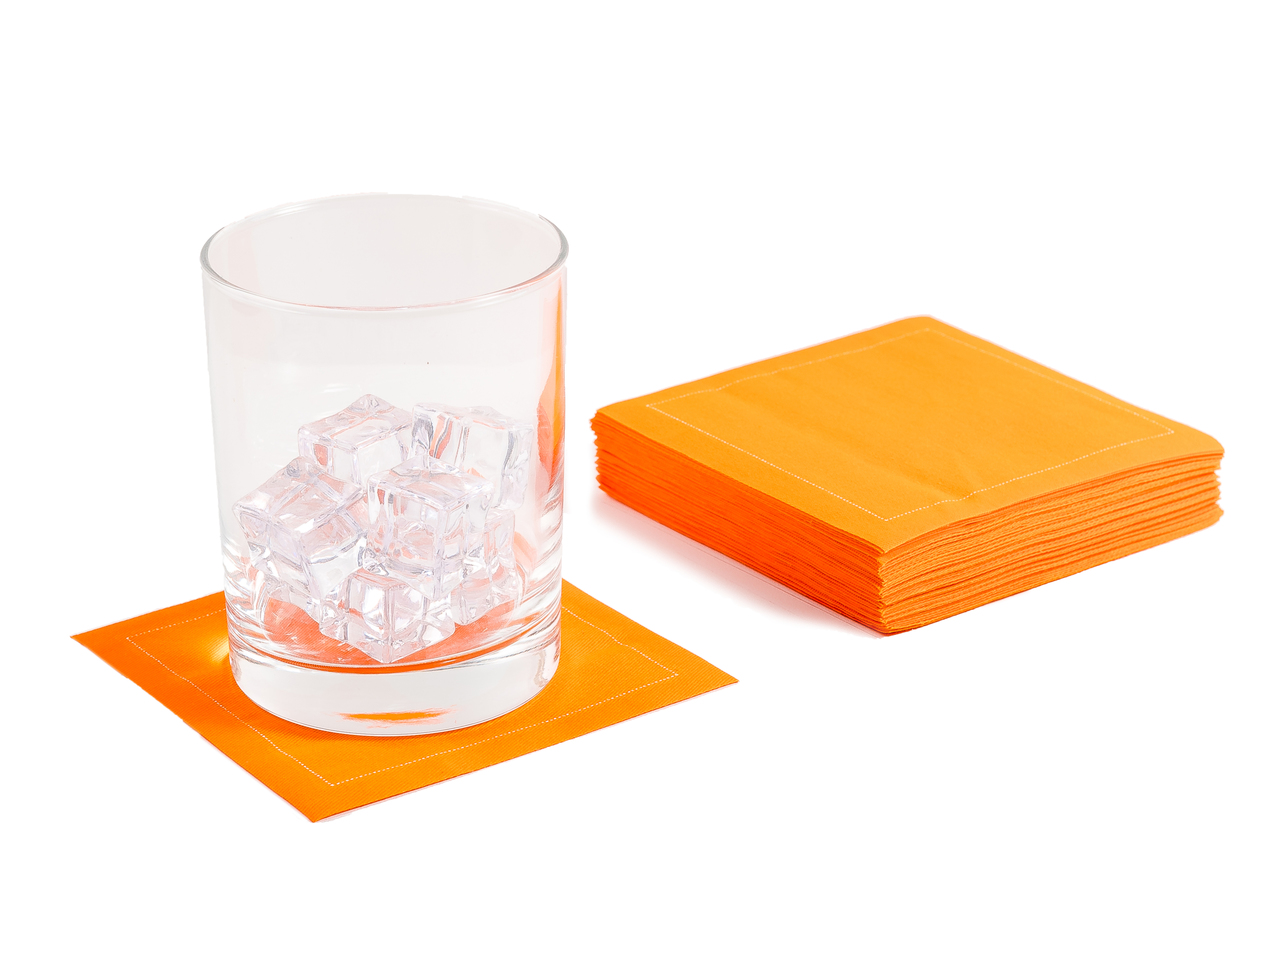 "Persimmon Cotton Cocktail (200 GSM) - 4.5"" x 4.5"" - 1200 Units"